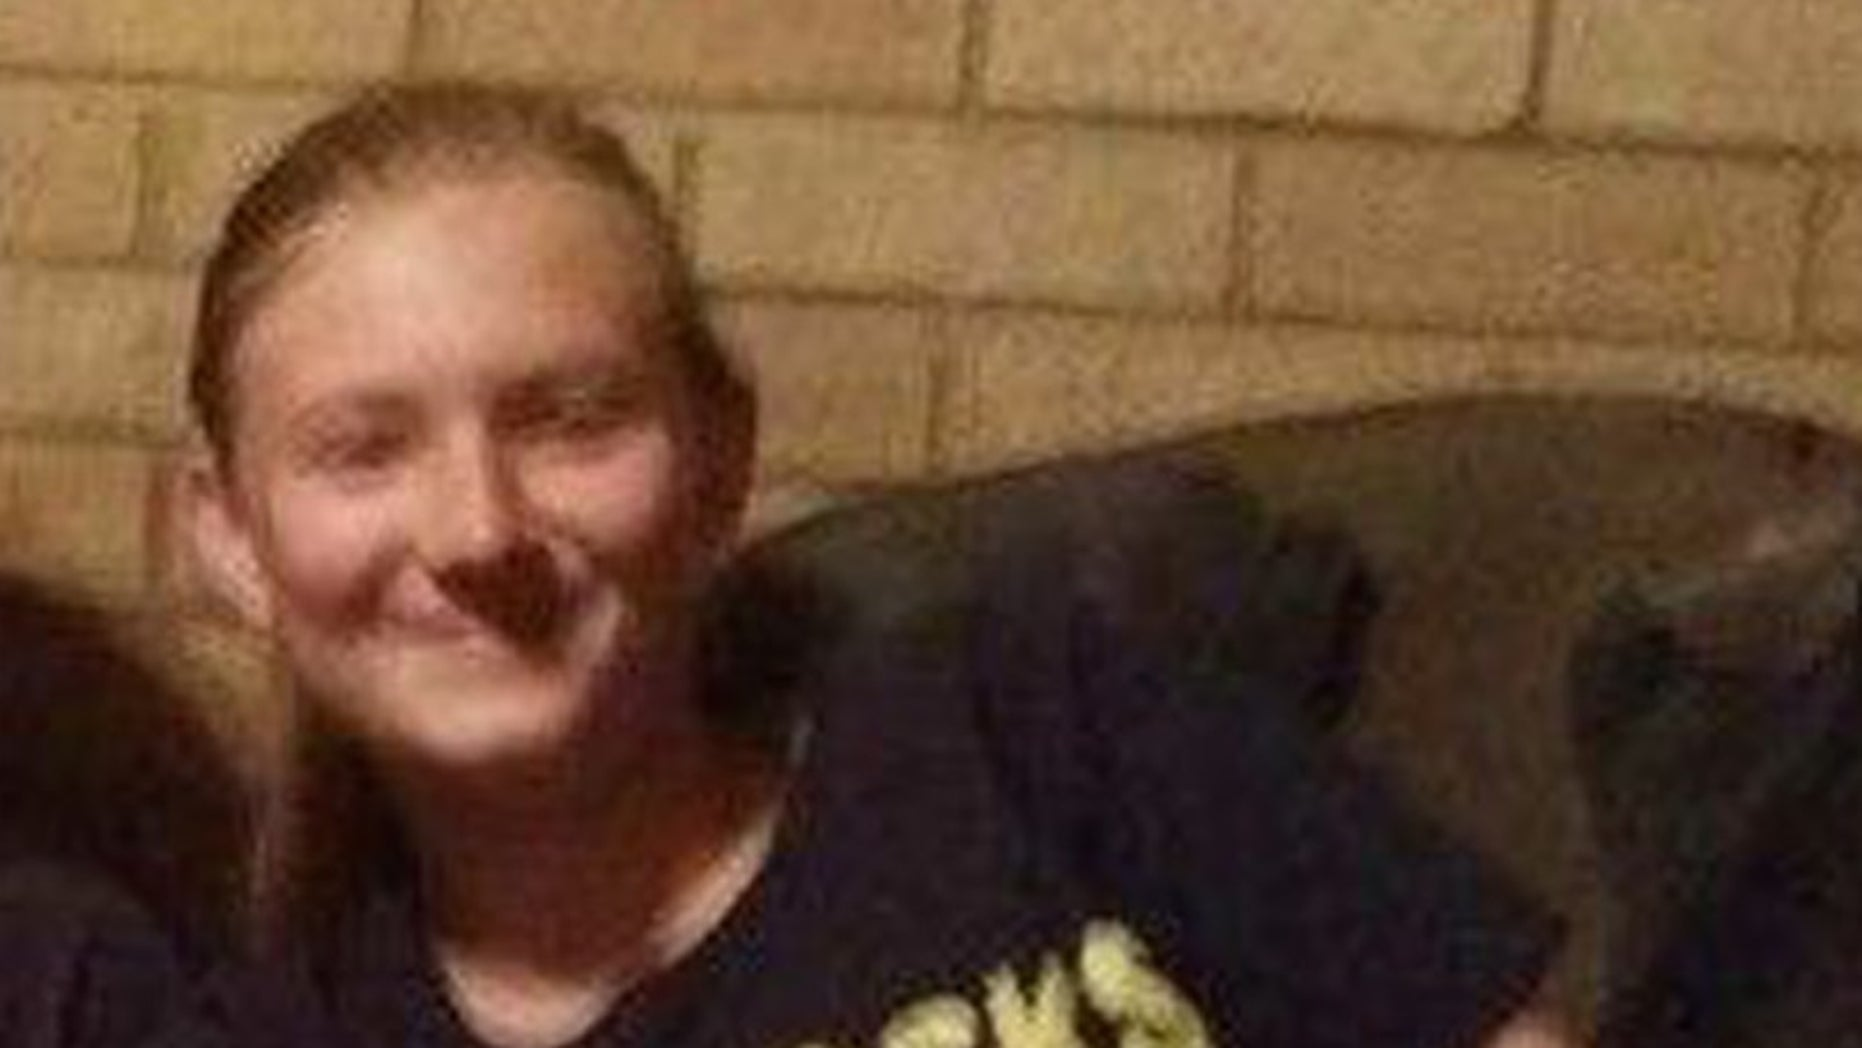 Madison Coe, 14, of Lubbock, Texas, died after using her cellphone in the bathtub and getting electrocuted.